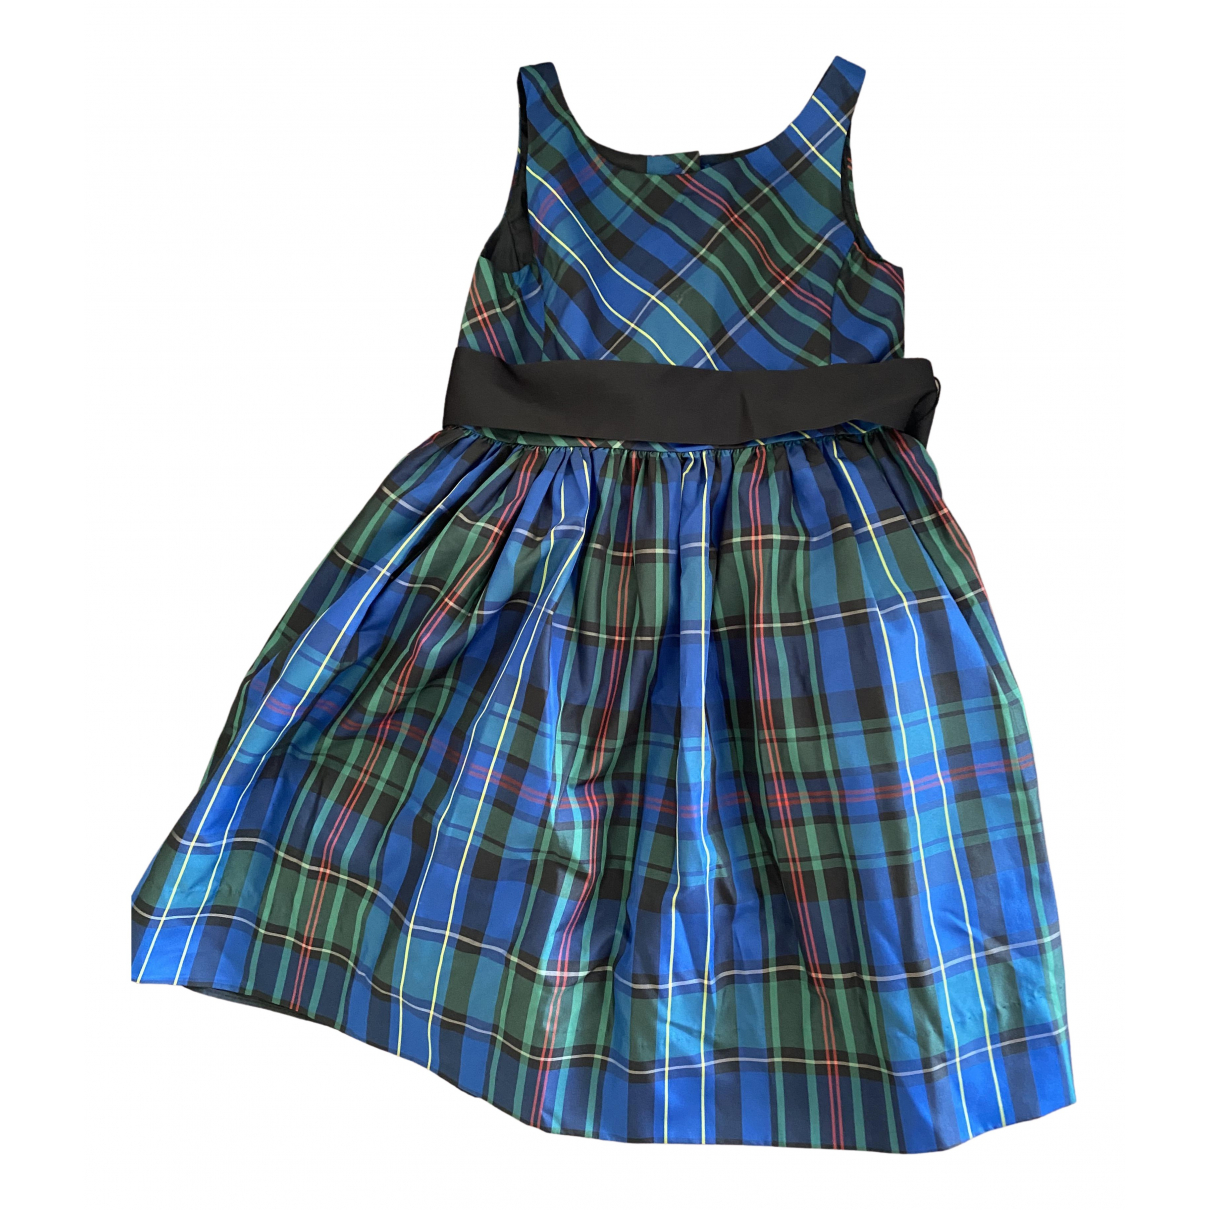 Polo Ralph Lauren N Multicolour dress for Kids 6 years - up to 114cm FR